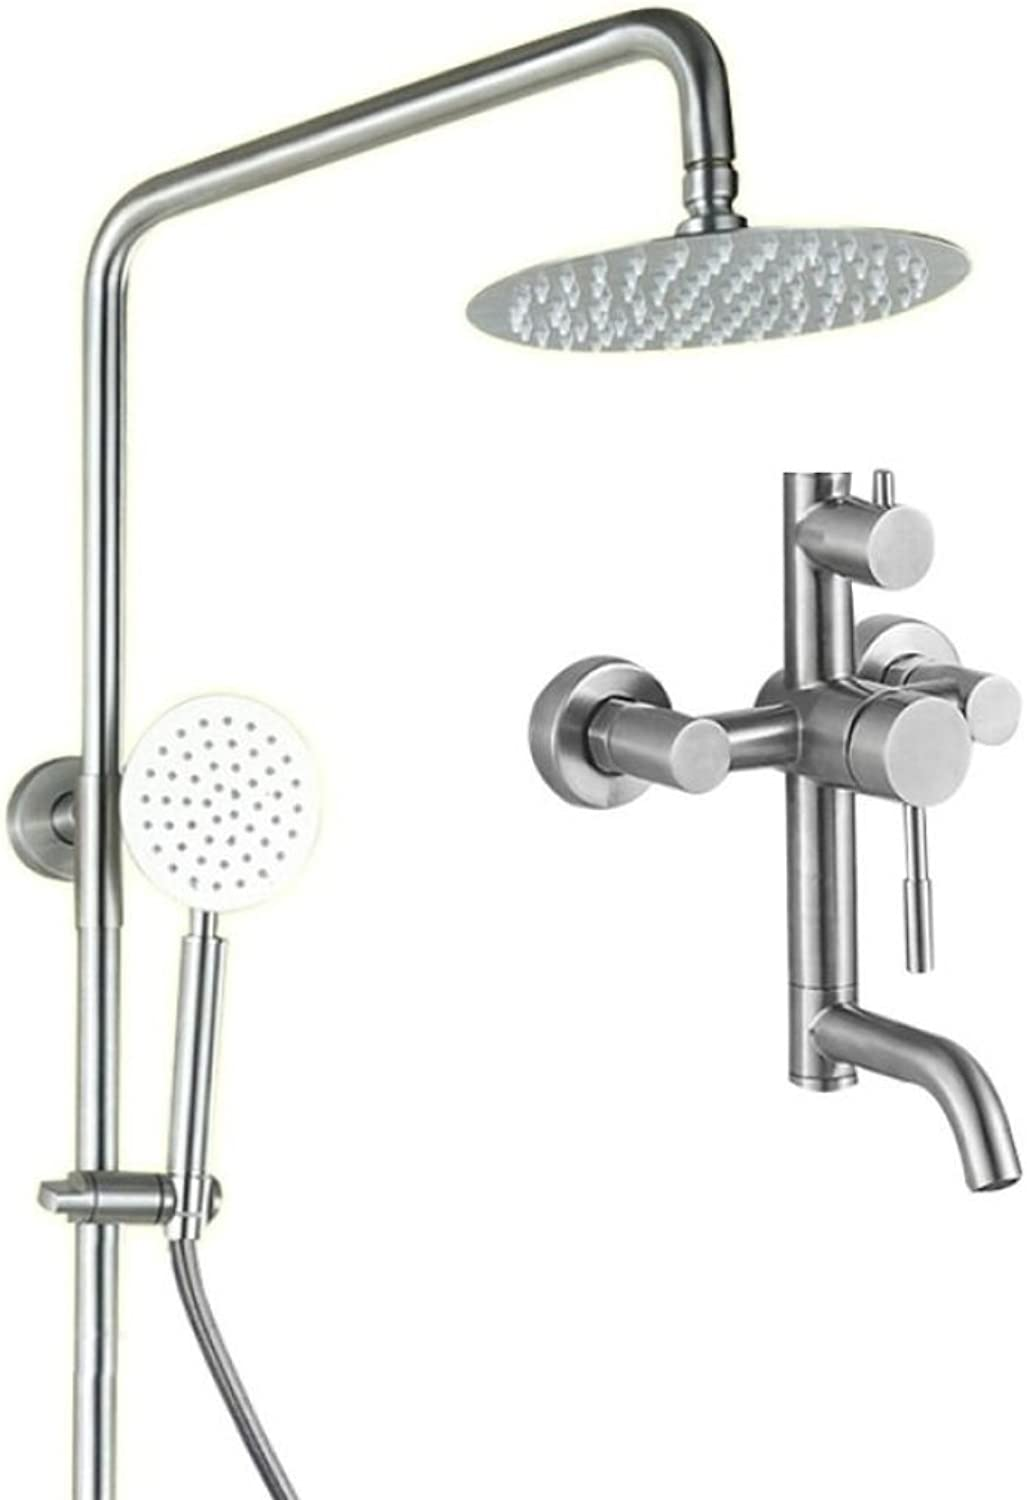 LyMei Bathroom Shower System Faucet Set Stainless steel Handheld Showerheads Rainfall Waterfall Shower Head Silicone Nozzles